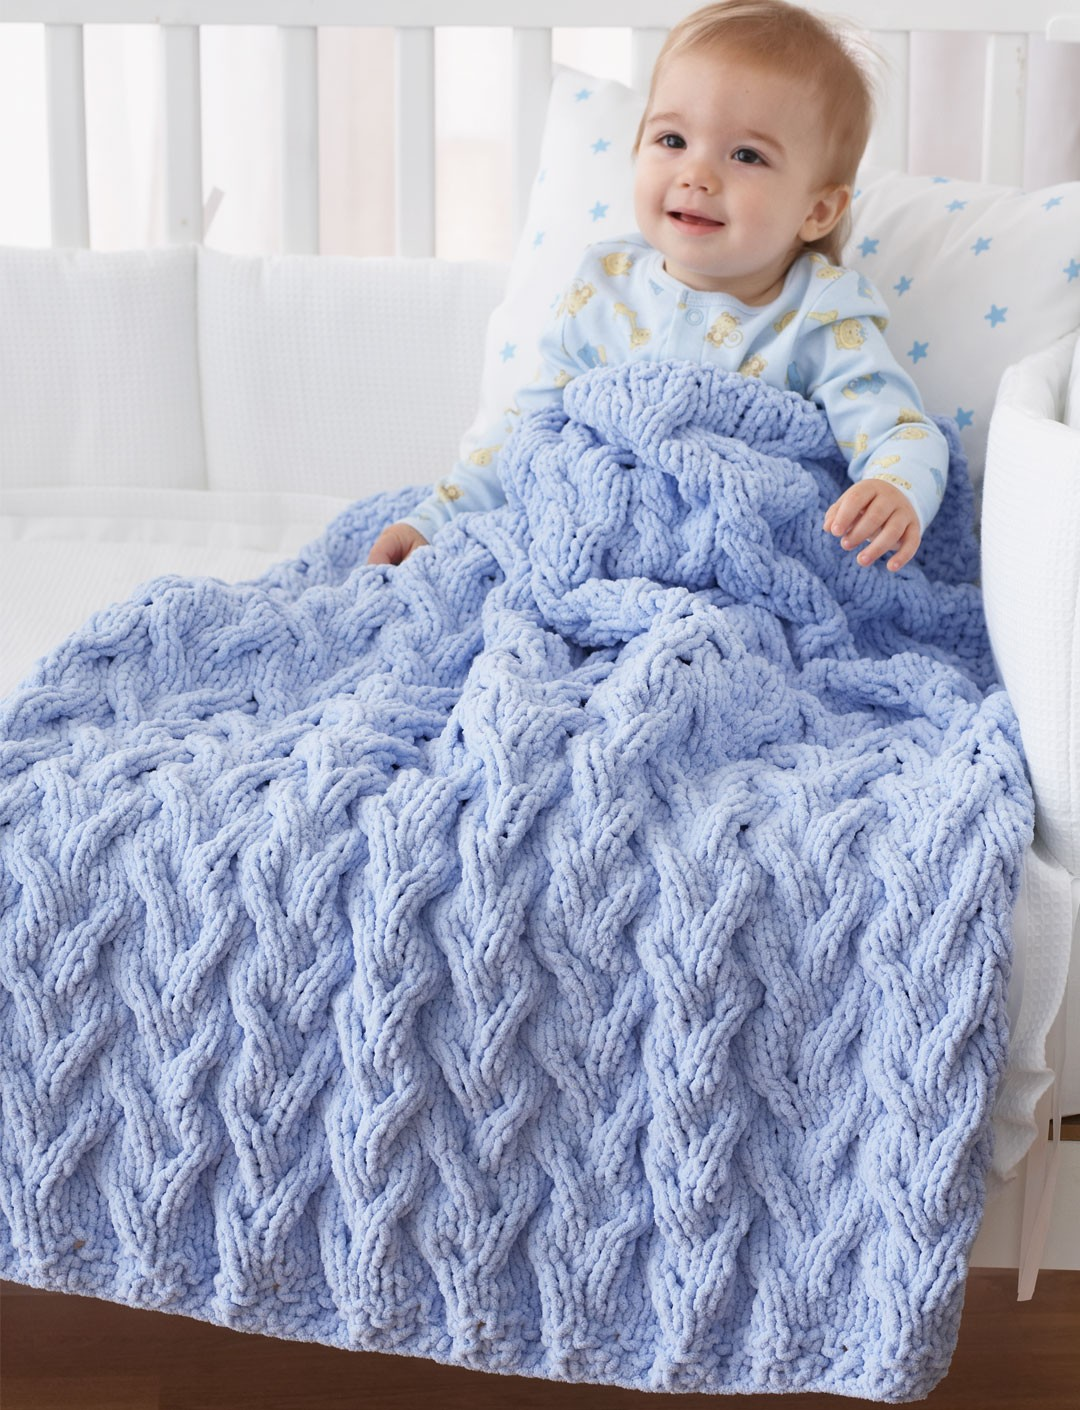 Knitting Pattern For Chunky Baby Blanket : Bernat Shadow Cable Baby Blanket, Knit Pattern ...